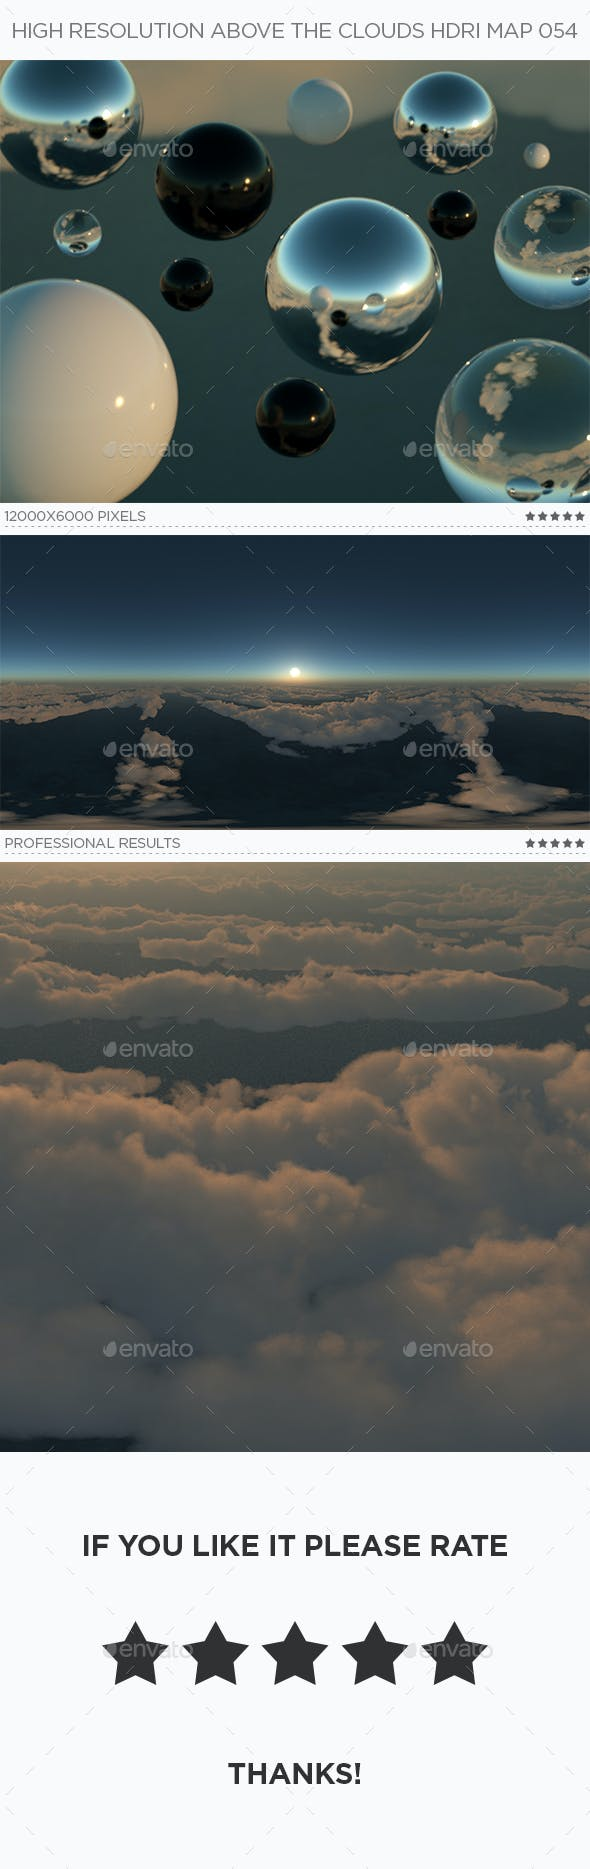 High Resolution Above The Clouds HDRi Map 054 - 3DOcean Item for Sale